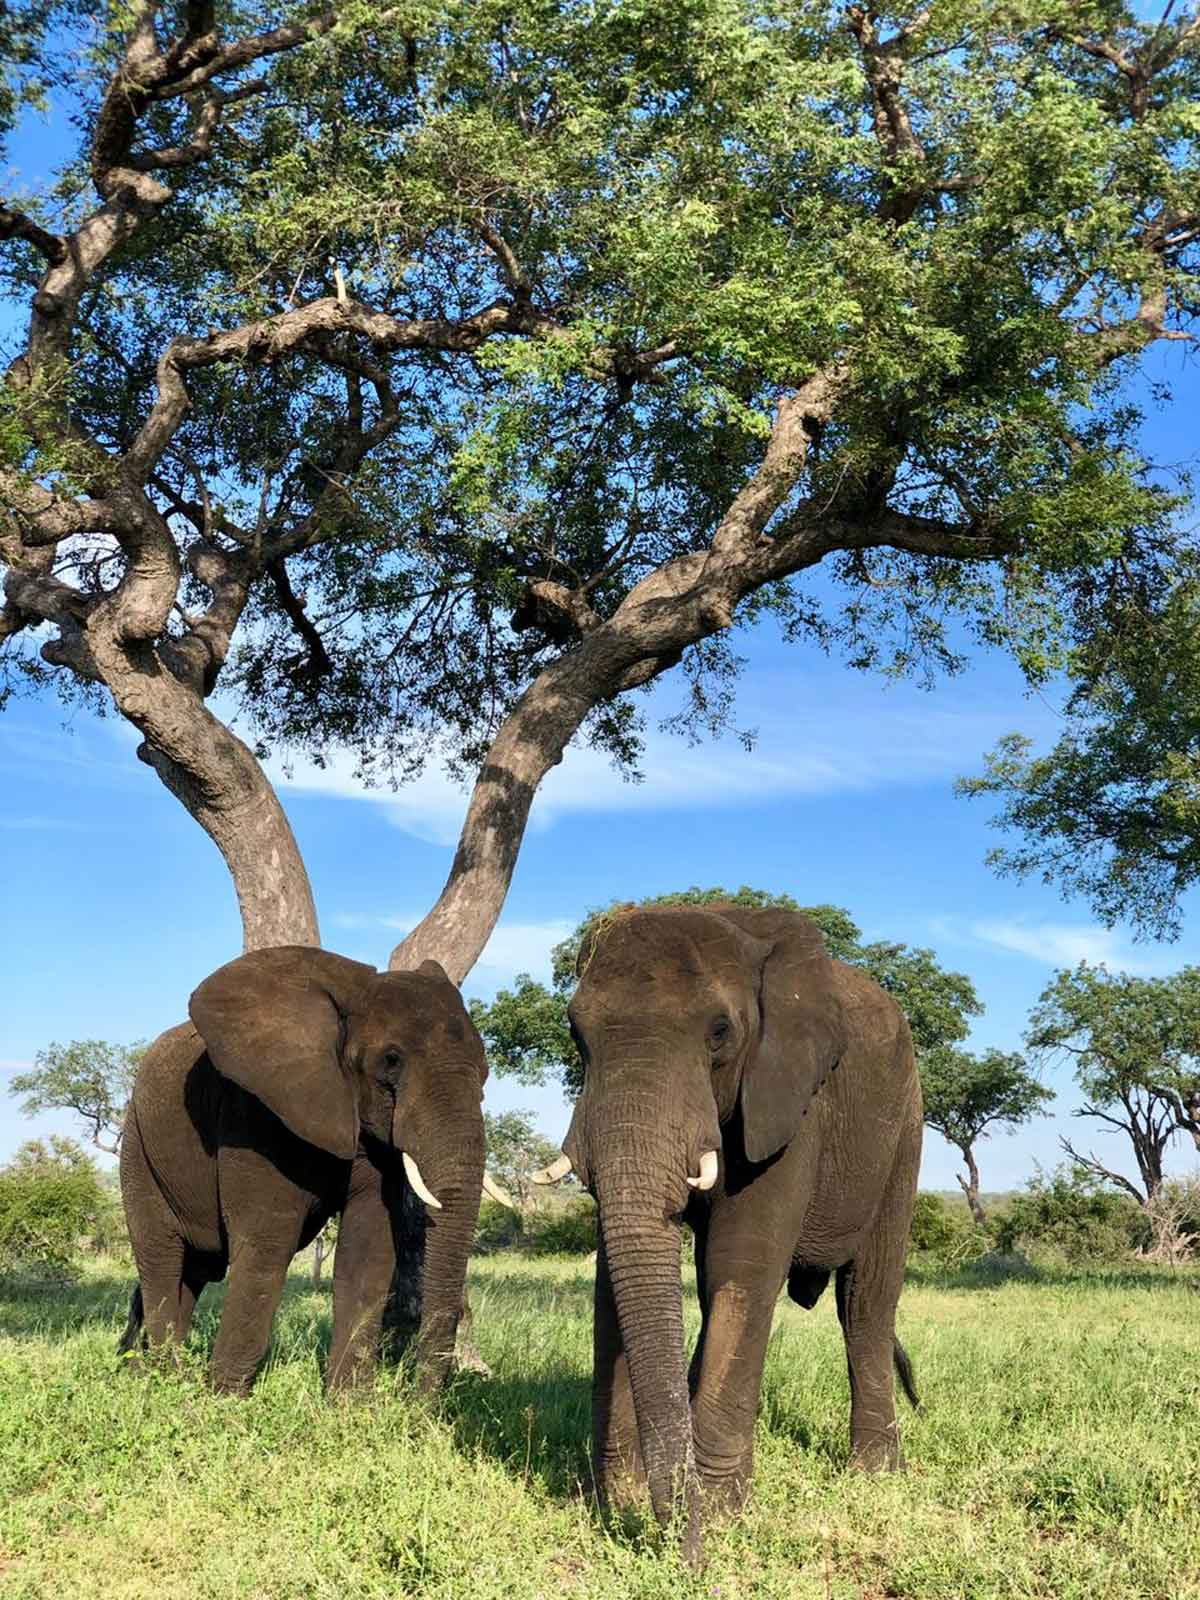 Elephants and Marula Trees